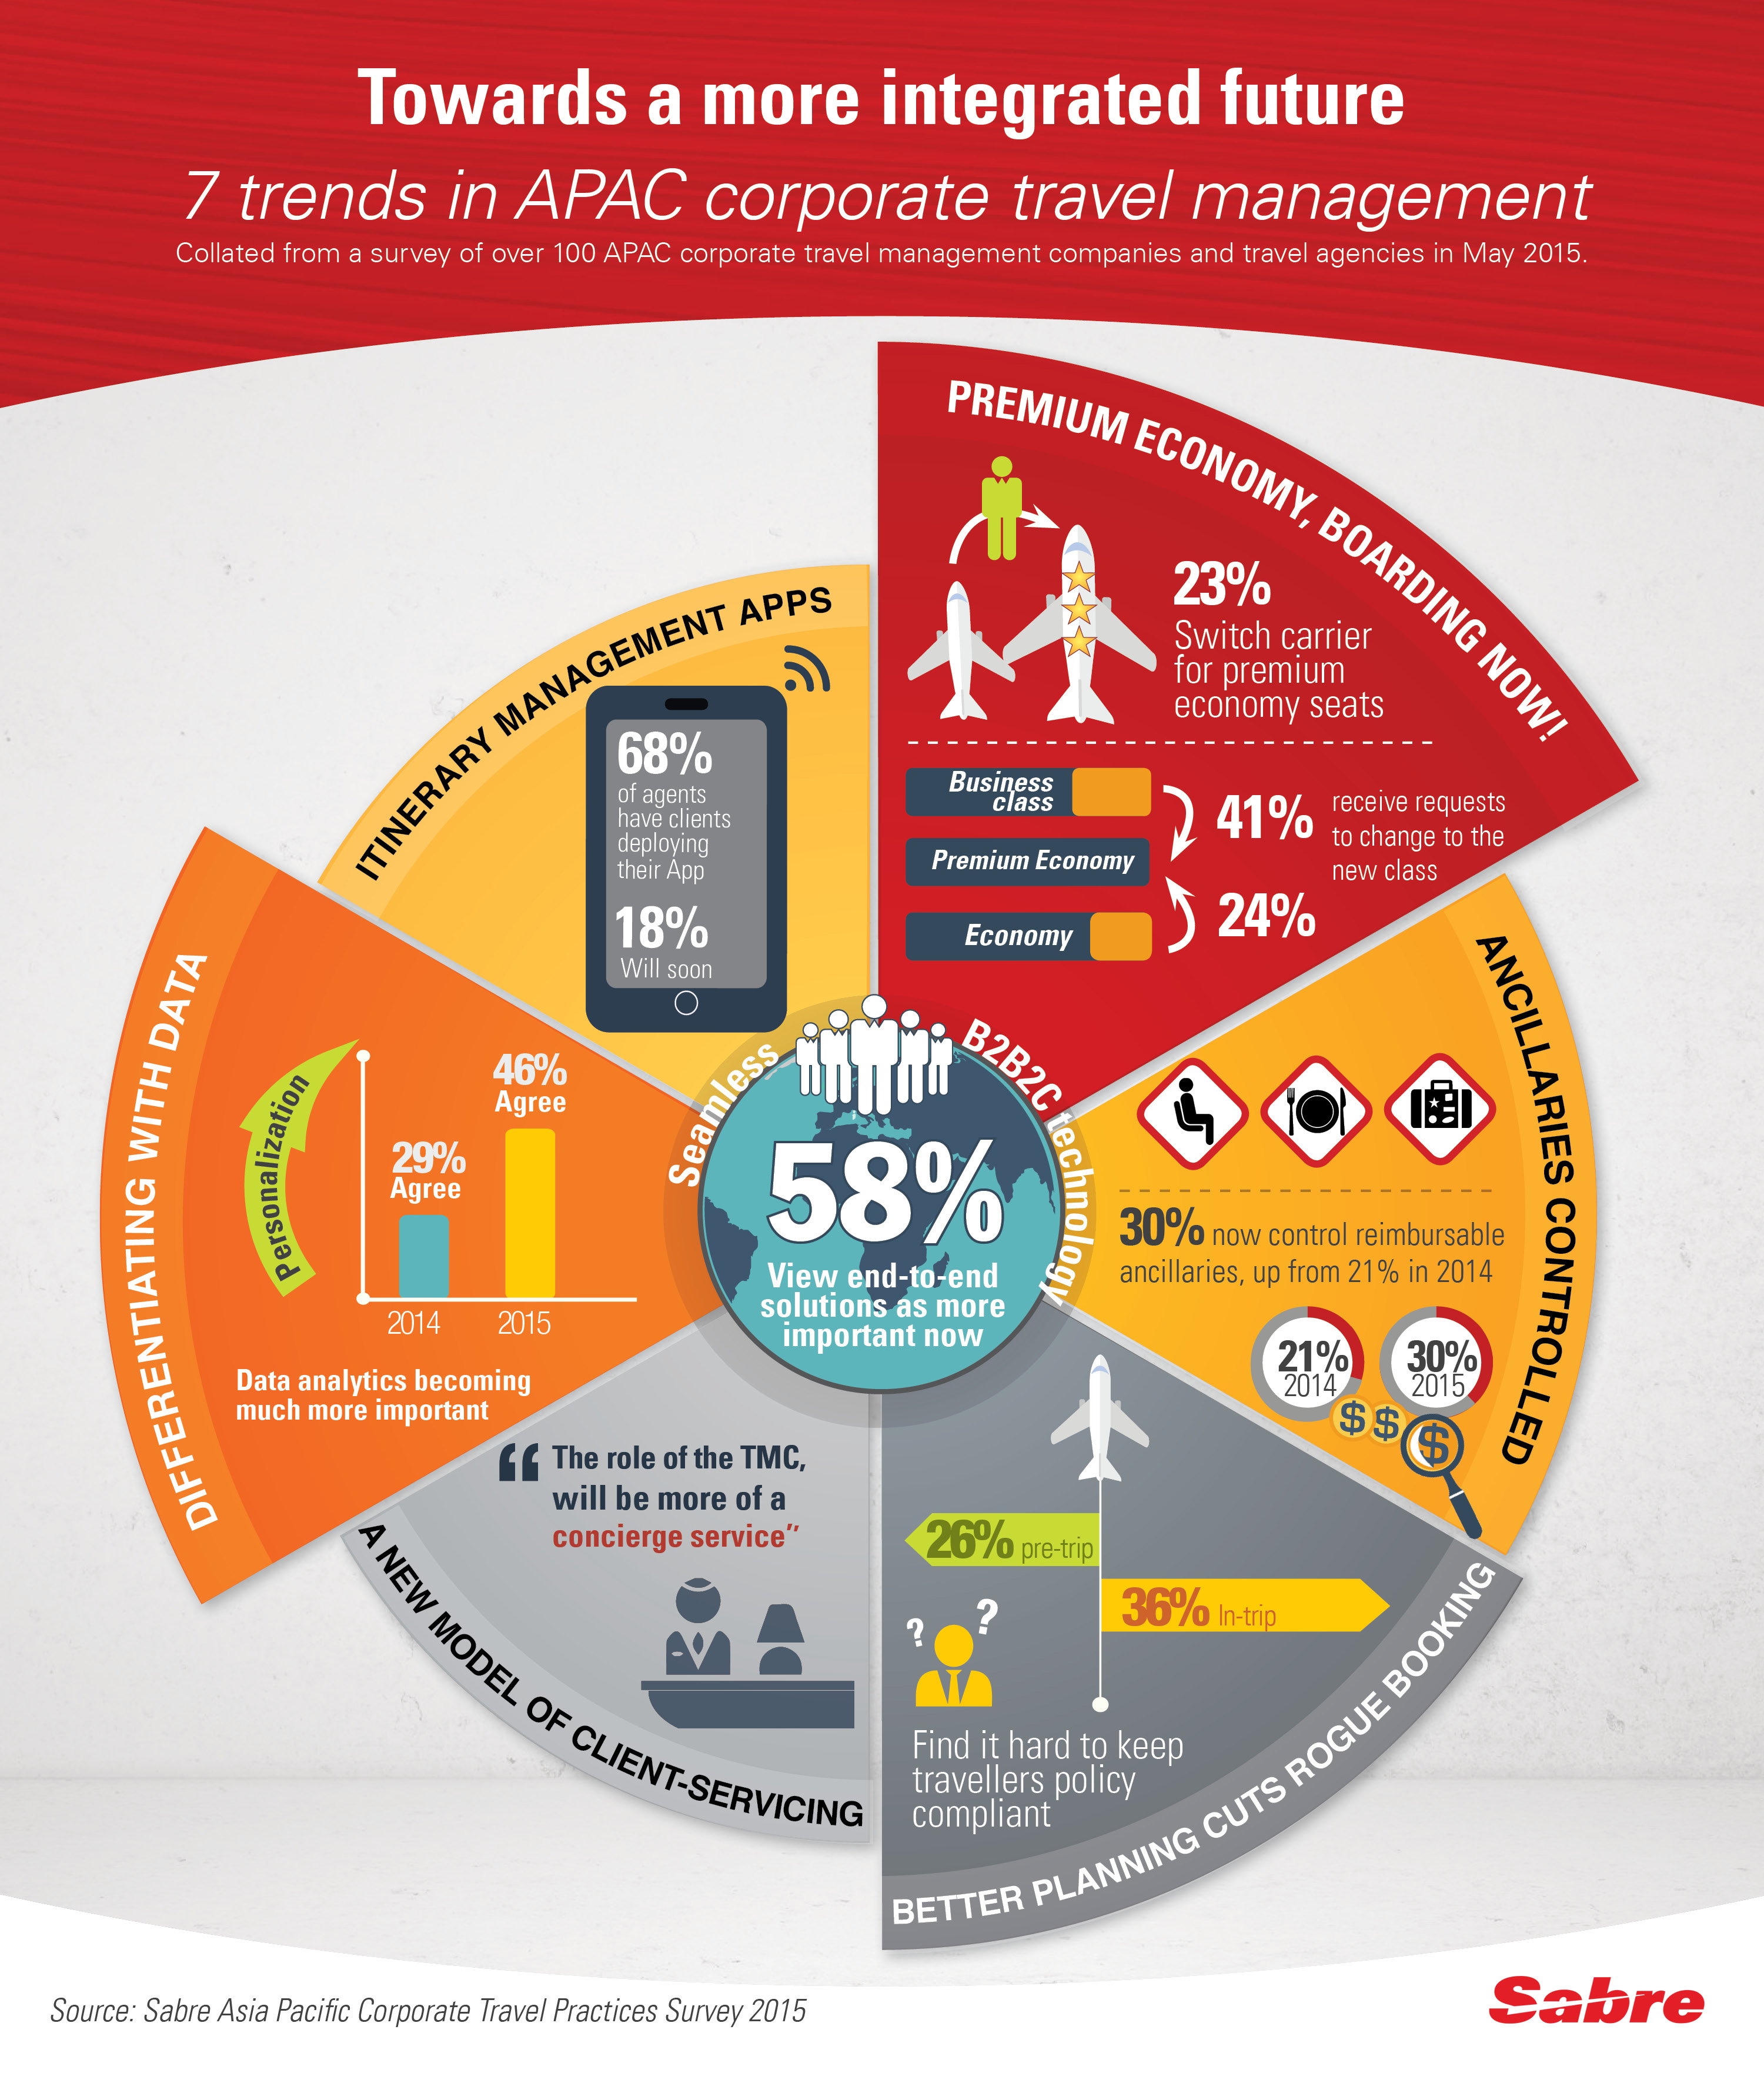 Sabre Reveals Seven Trends In Asia Pacific Corporate